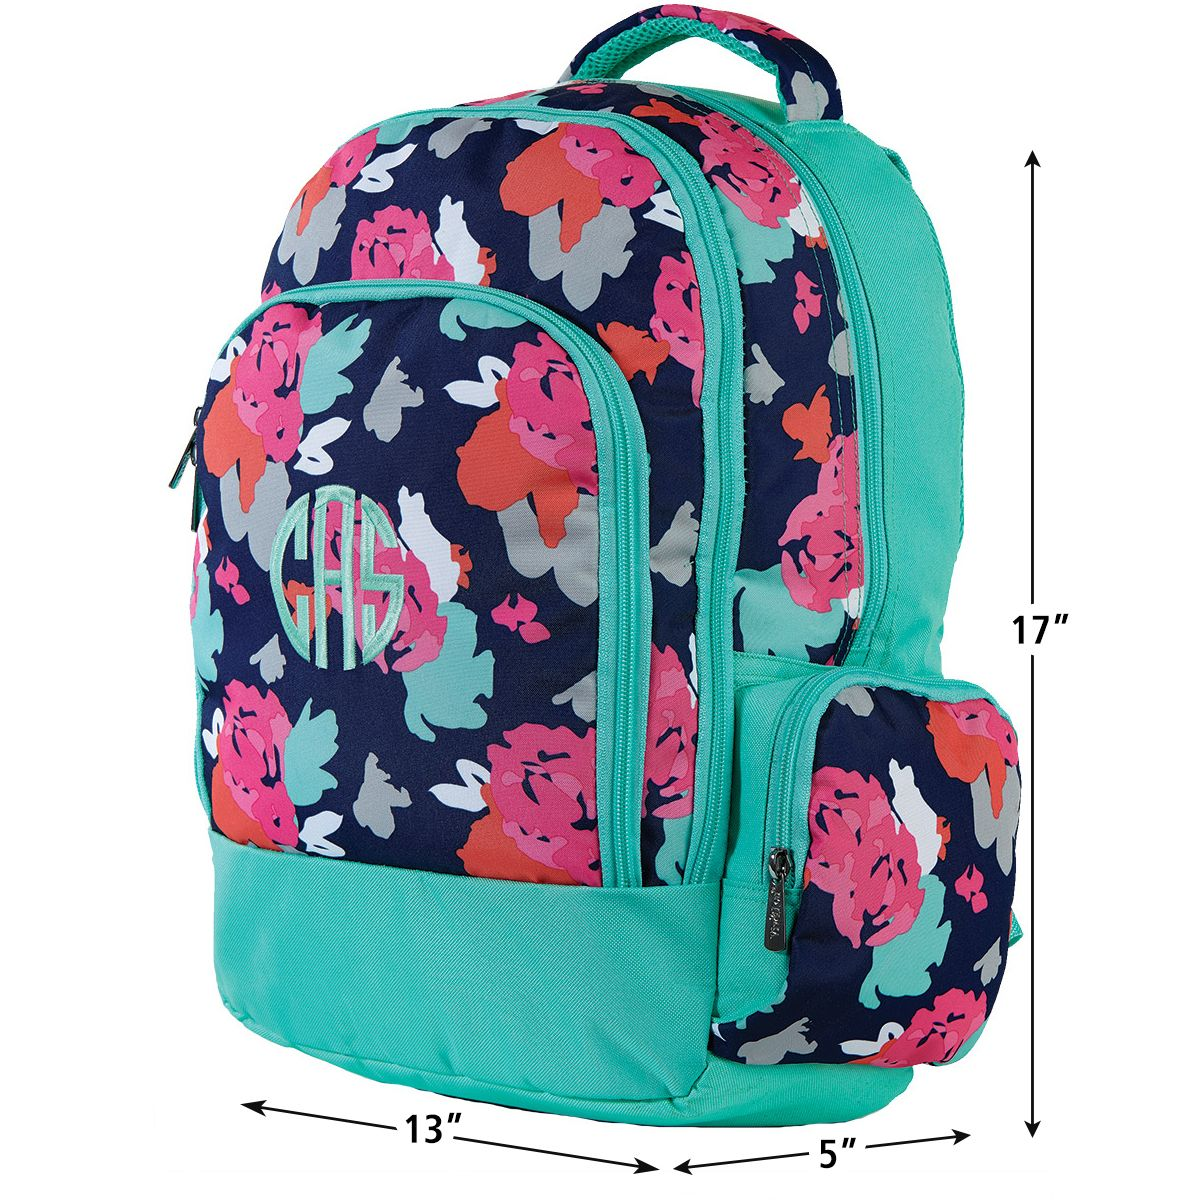 Amelia Personalized Backpack